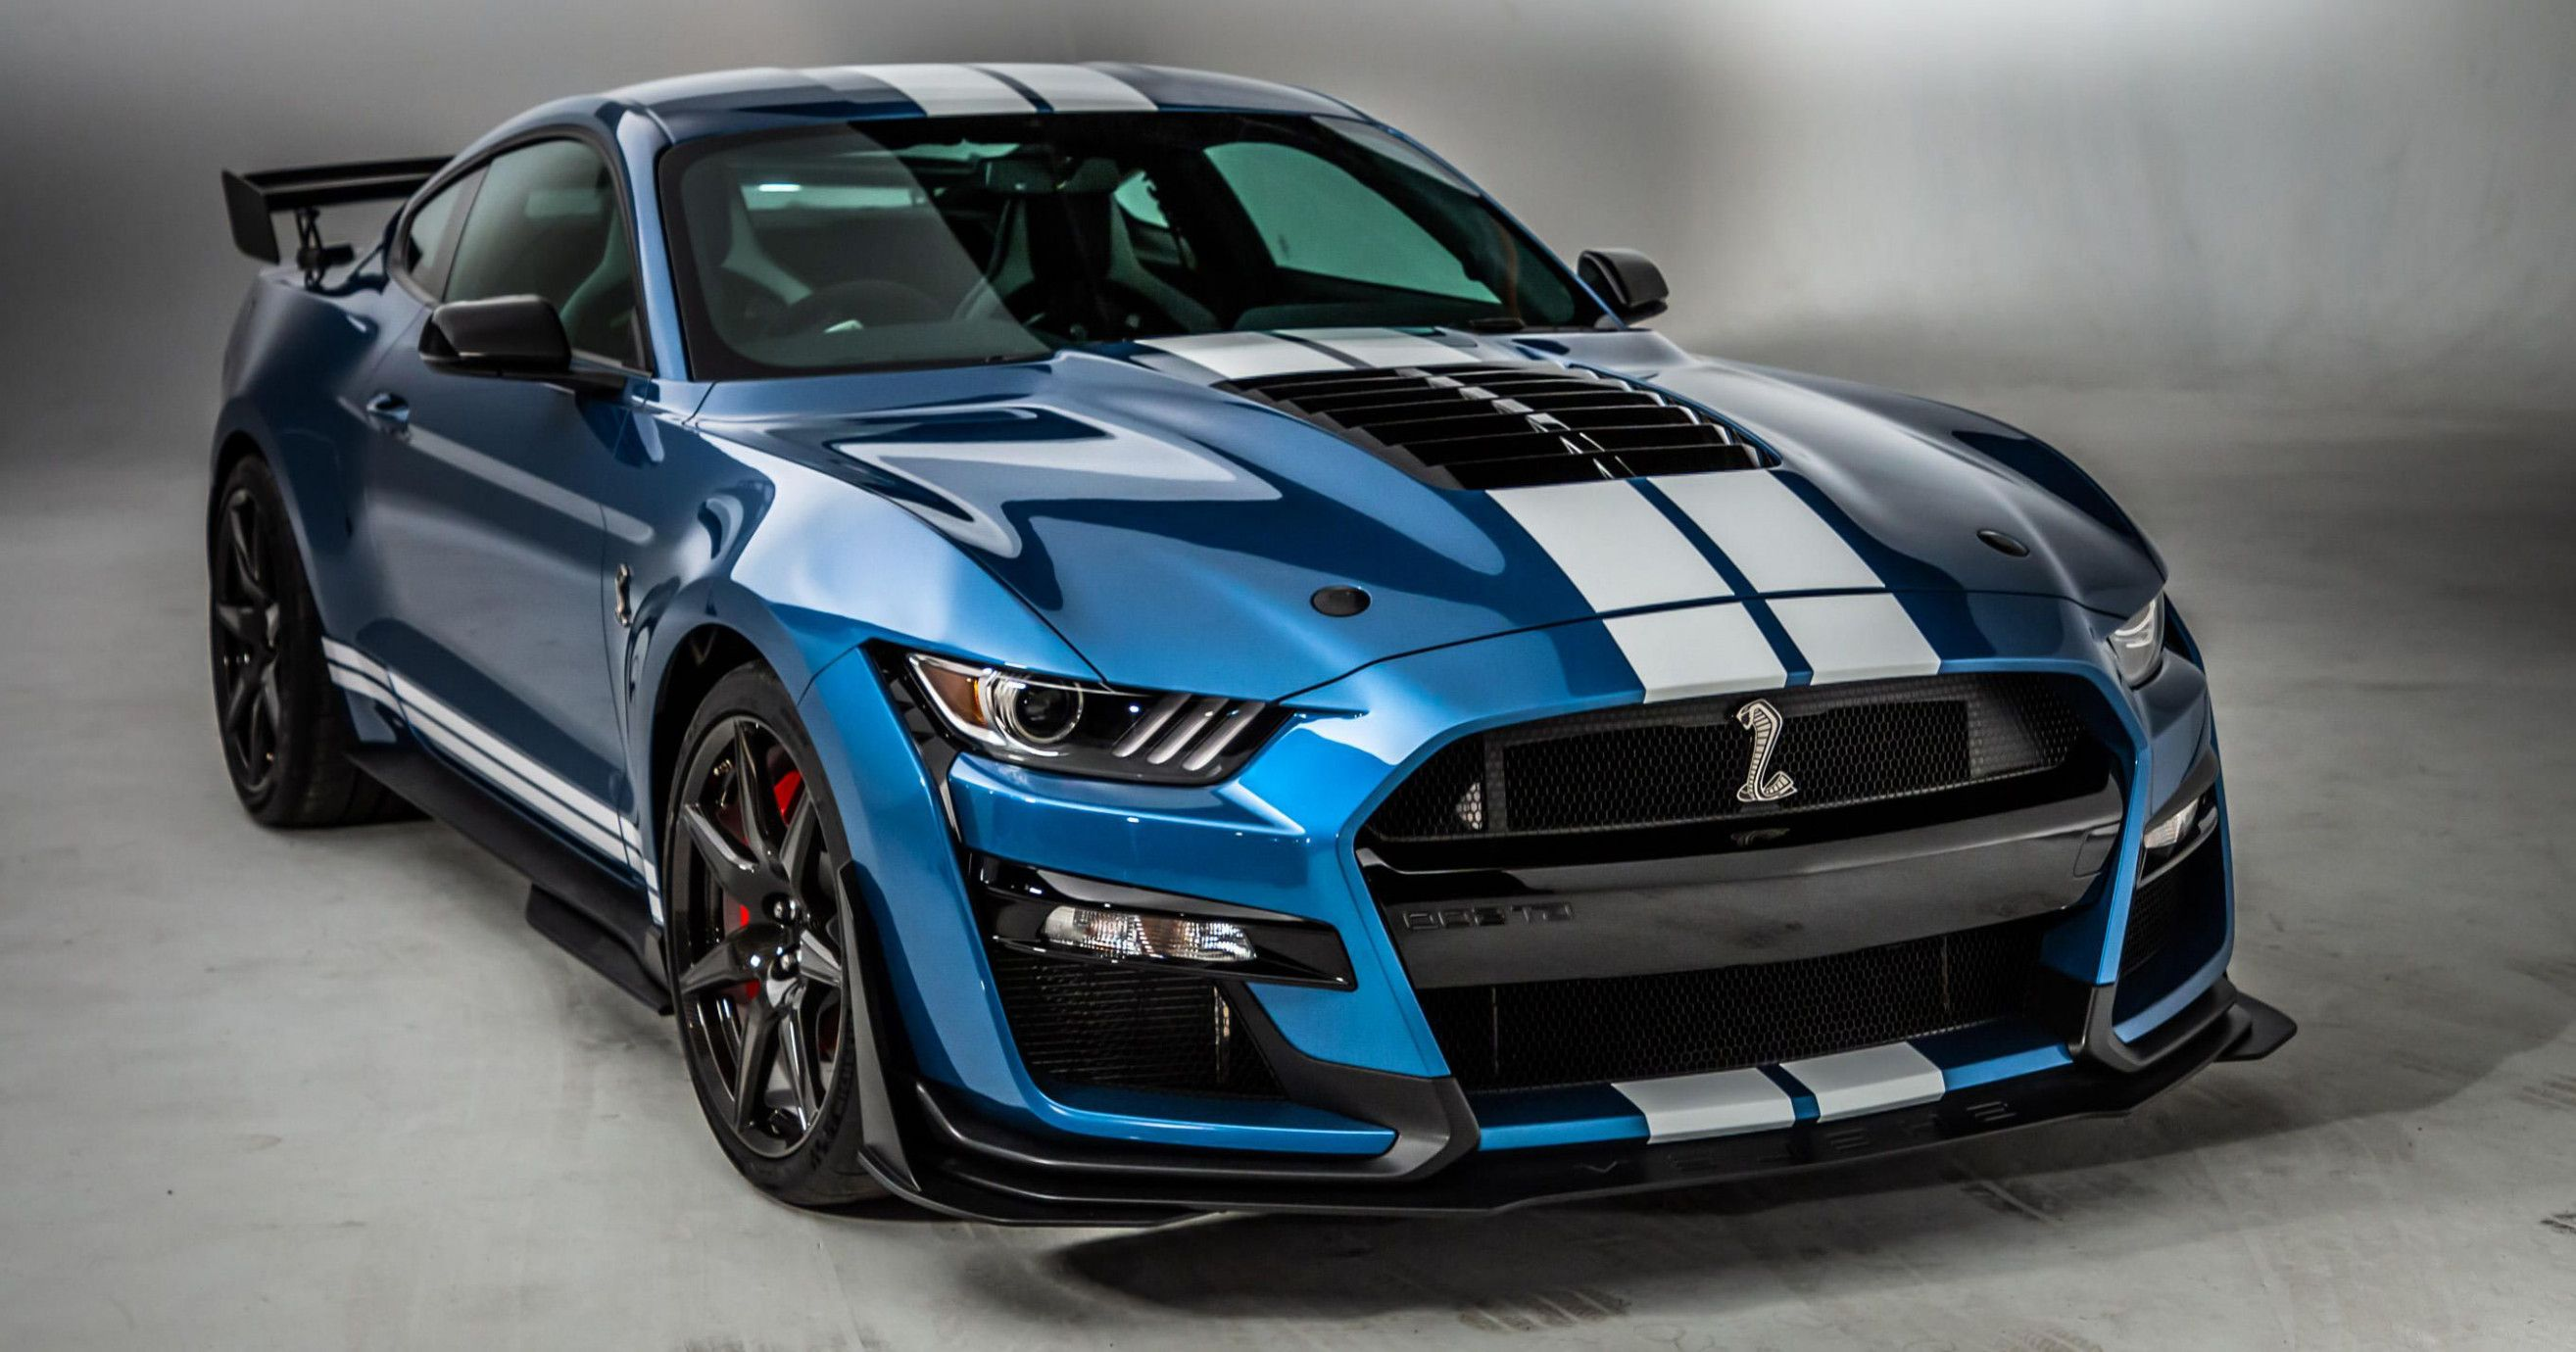 7 Quick Tips For Ford Mustang Gt500 Shelby Ford Mustang Shelby